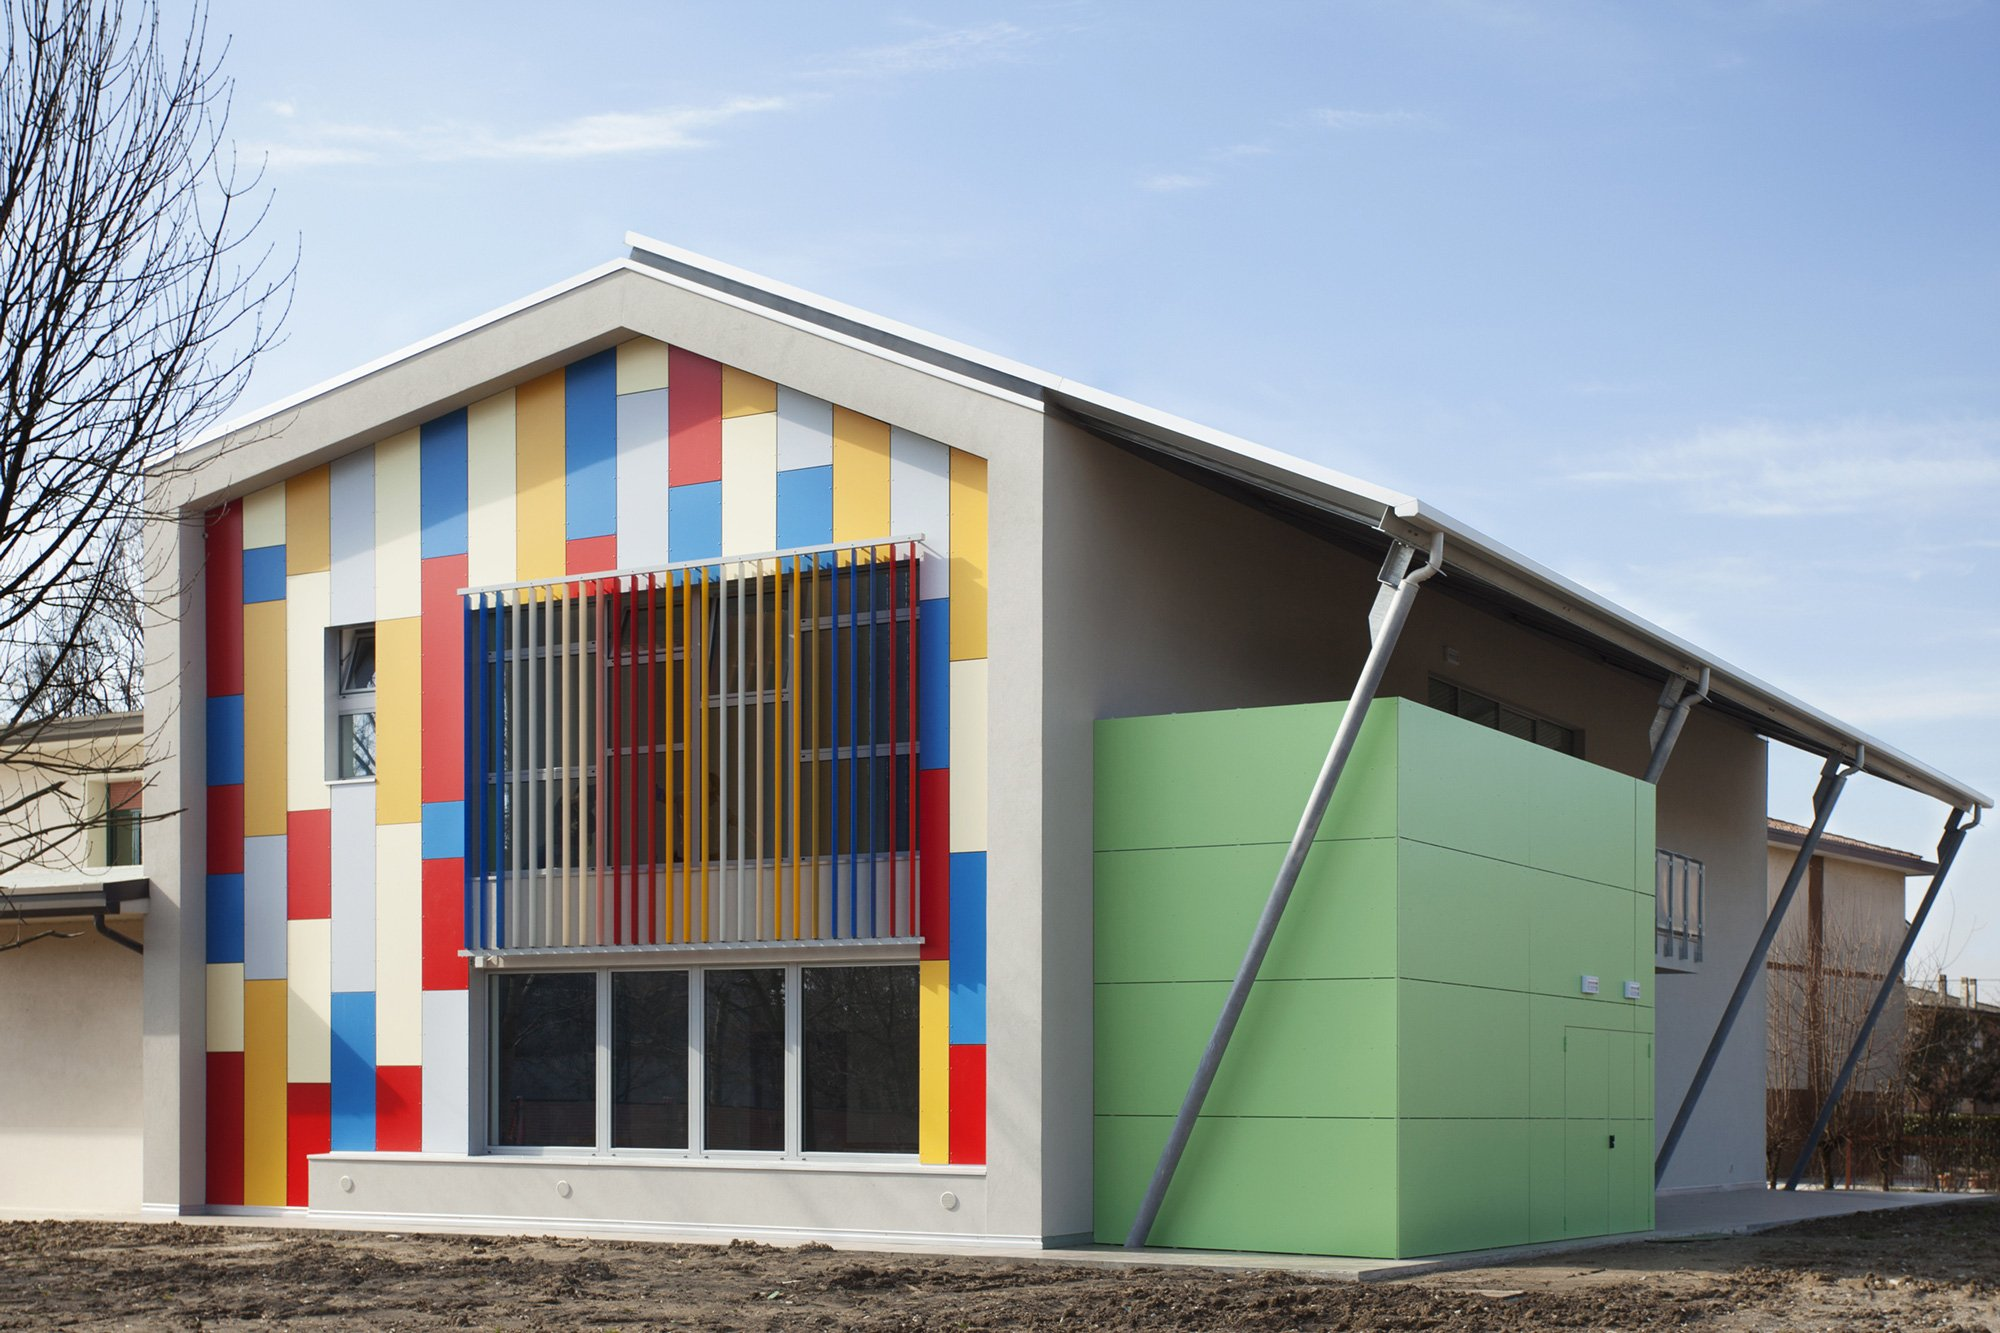 Extension of an elementary school